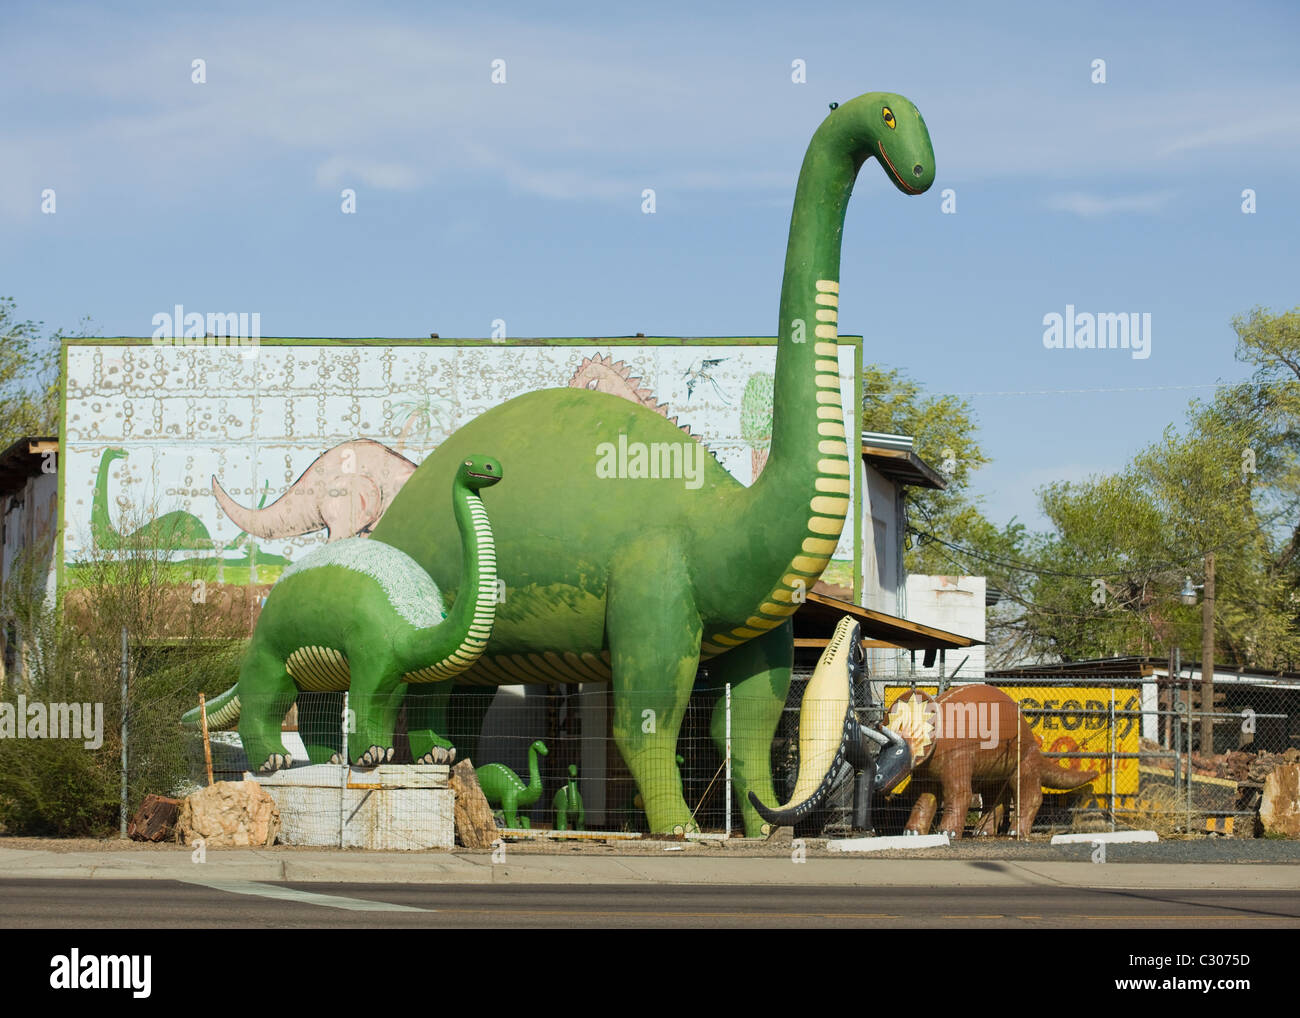 Dinosaur statues in Navajo country, Arizona, USA - Stock Image